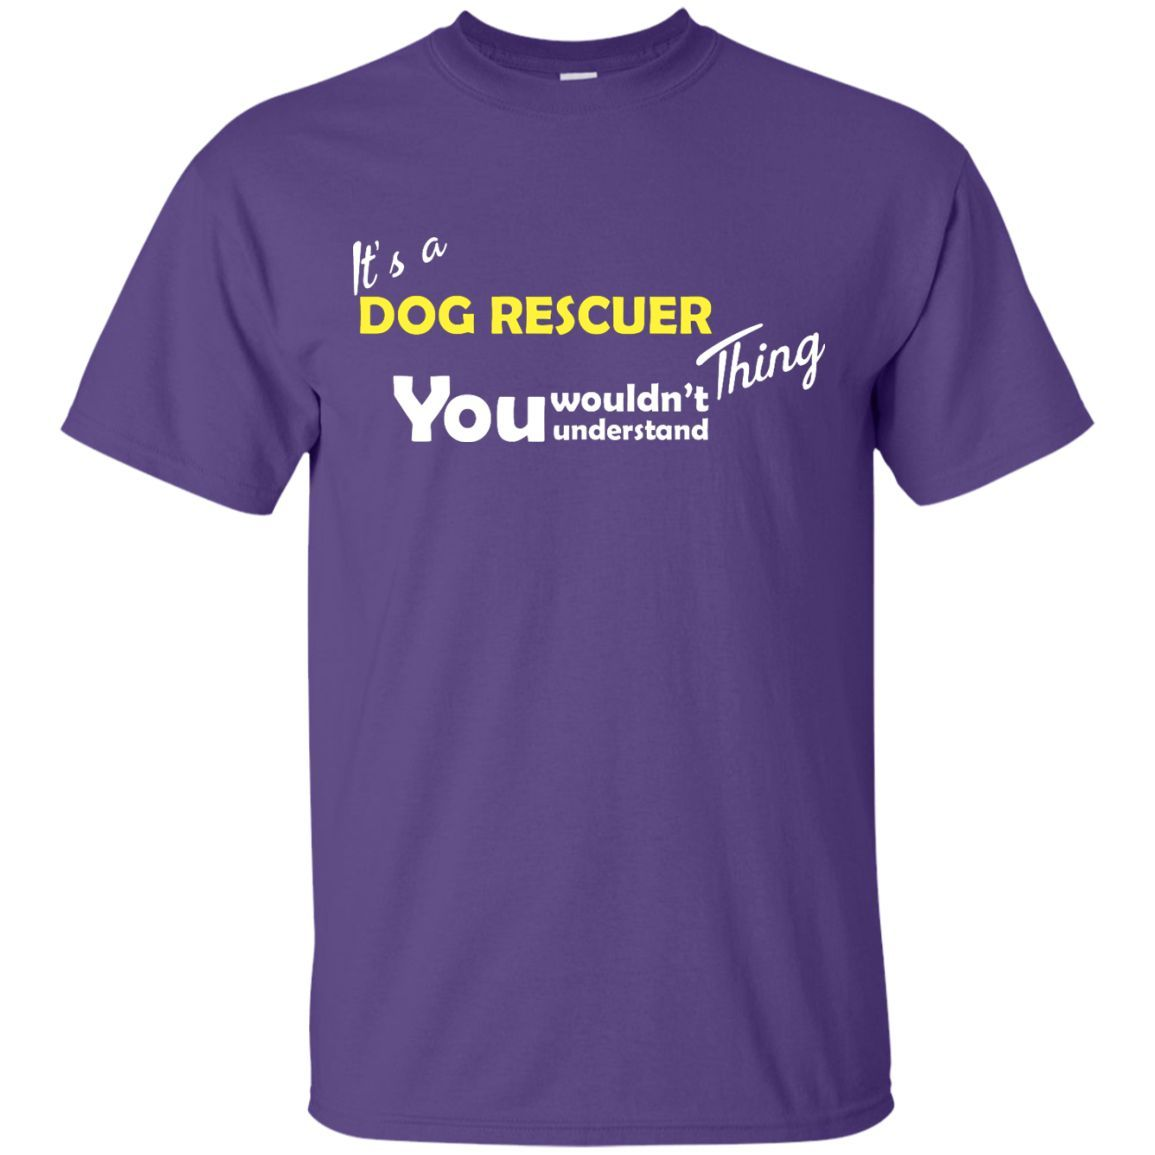 Its A Dog Rescuer Thing - T Shirt